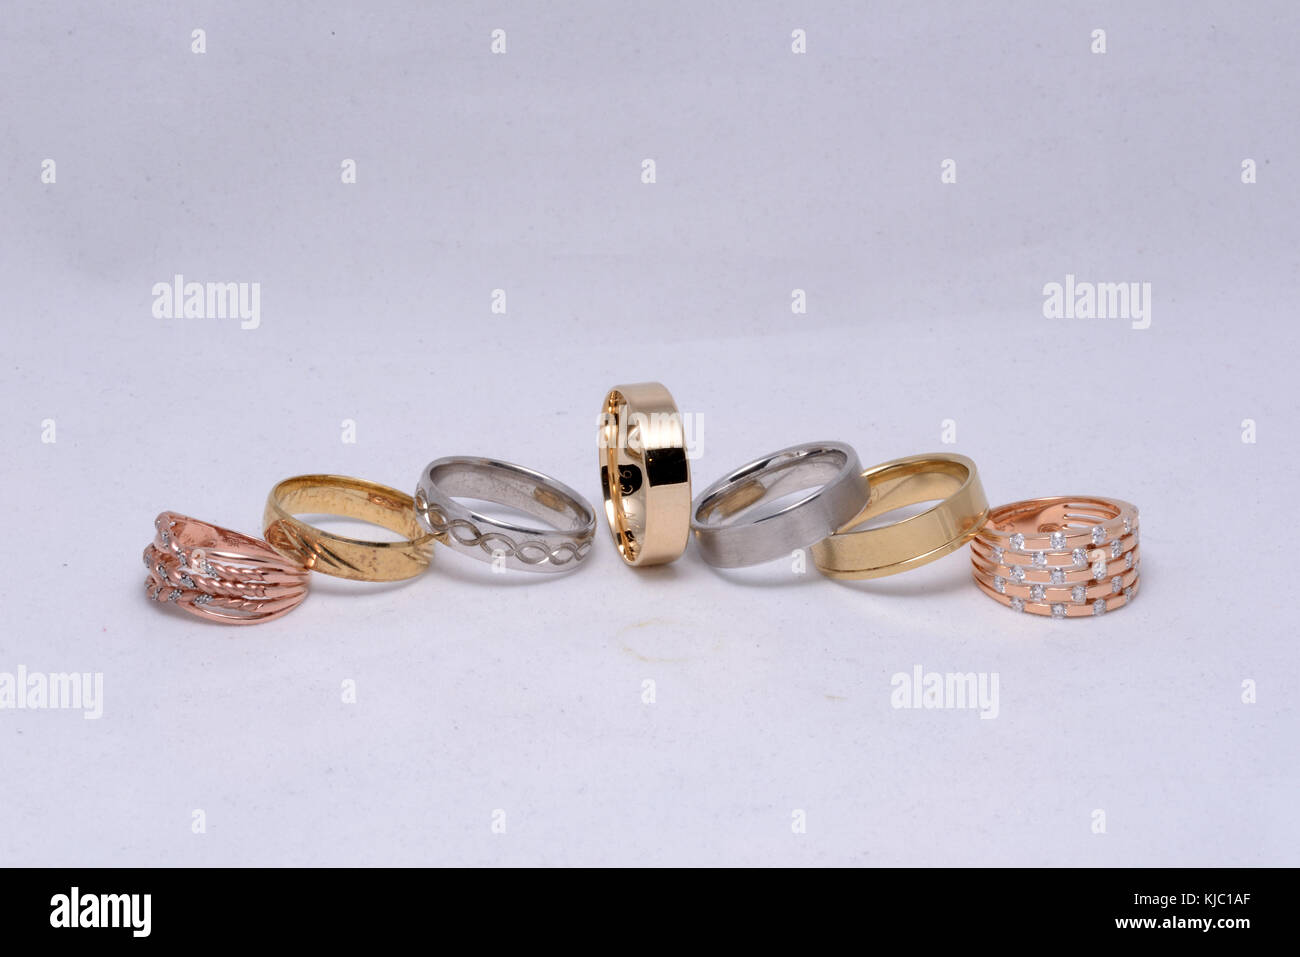 A display of gold and silver rings - Stock Image